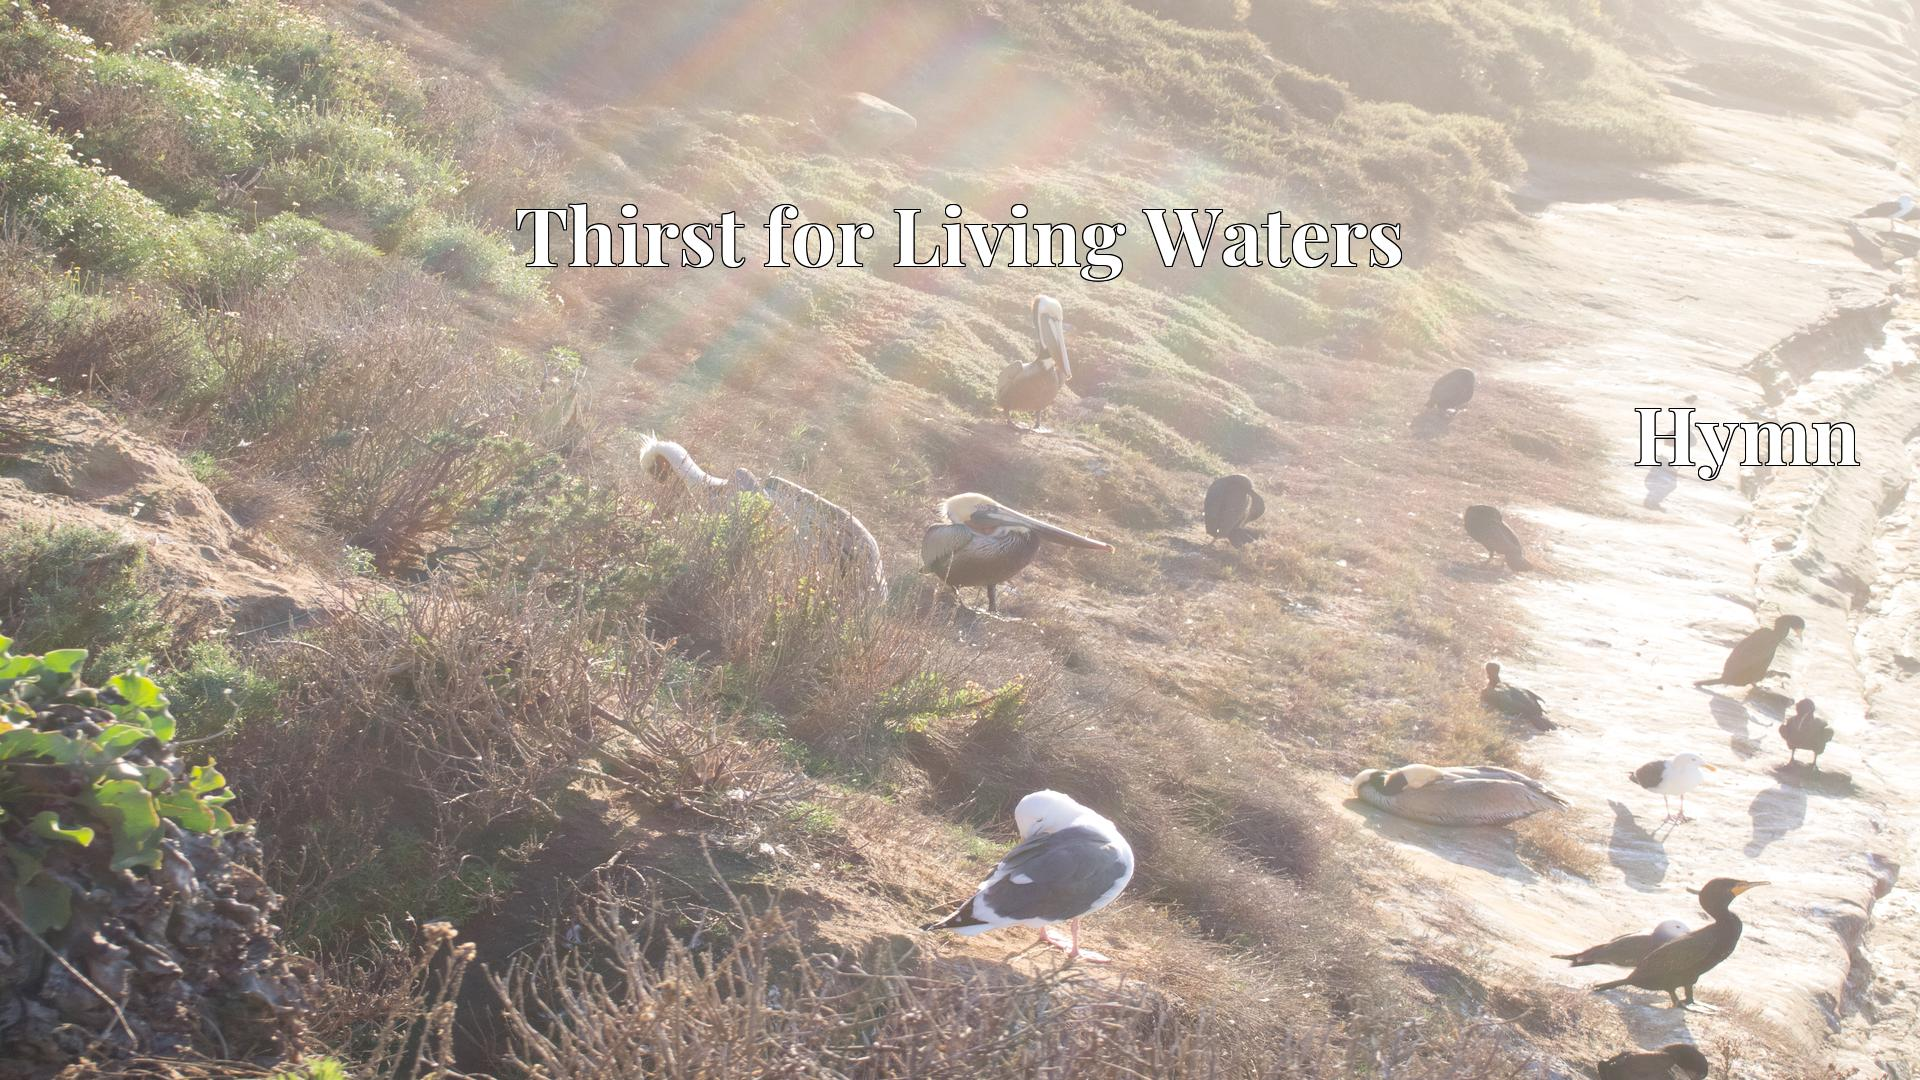 Thirst for Living Waters - Hymn